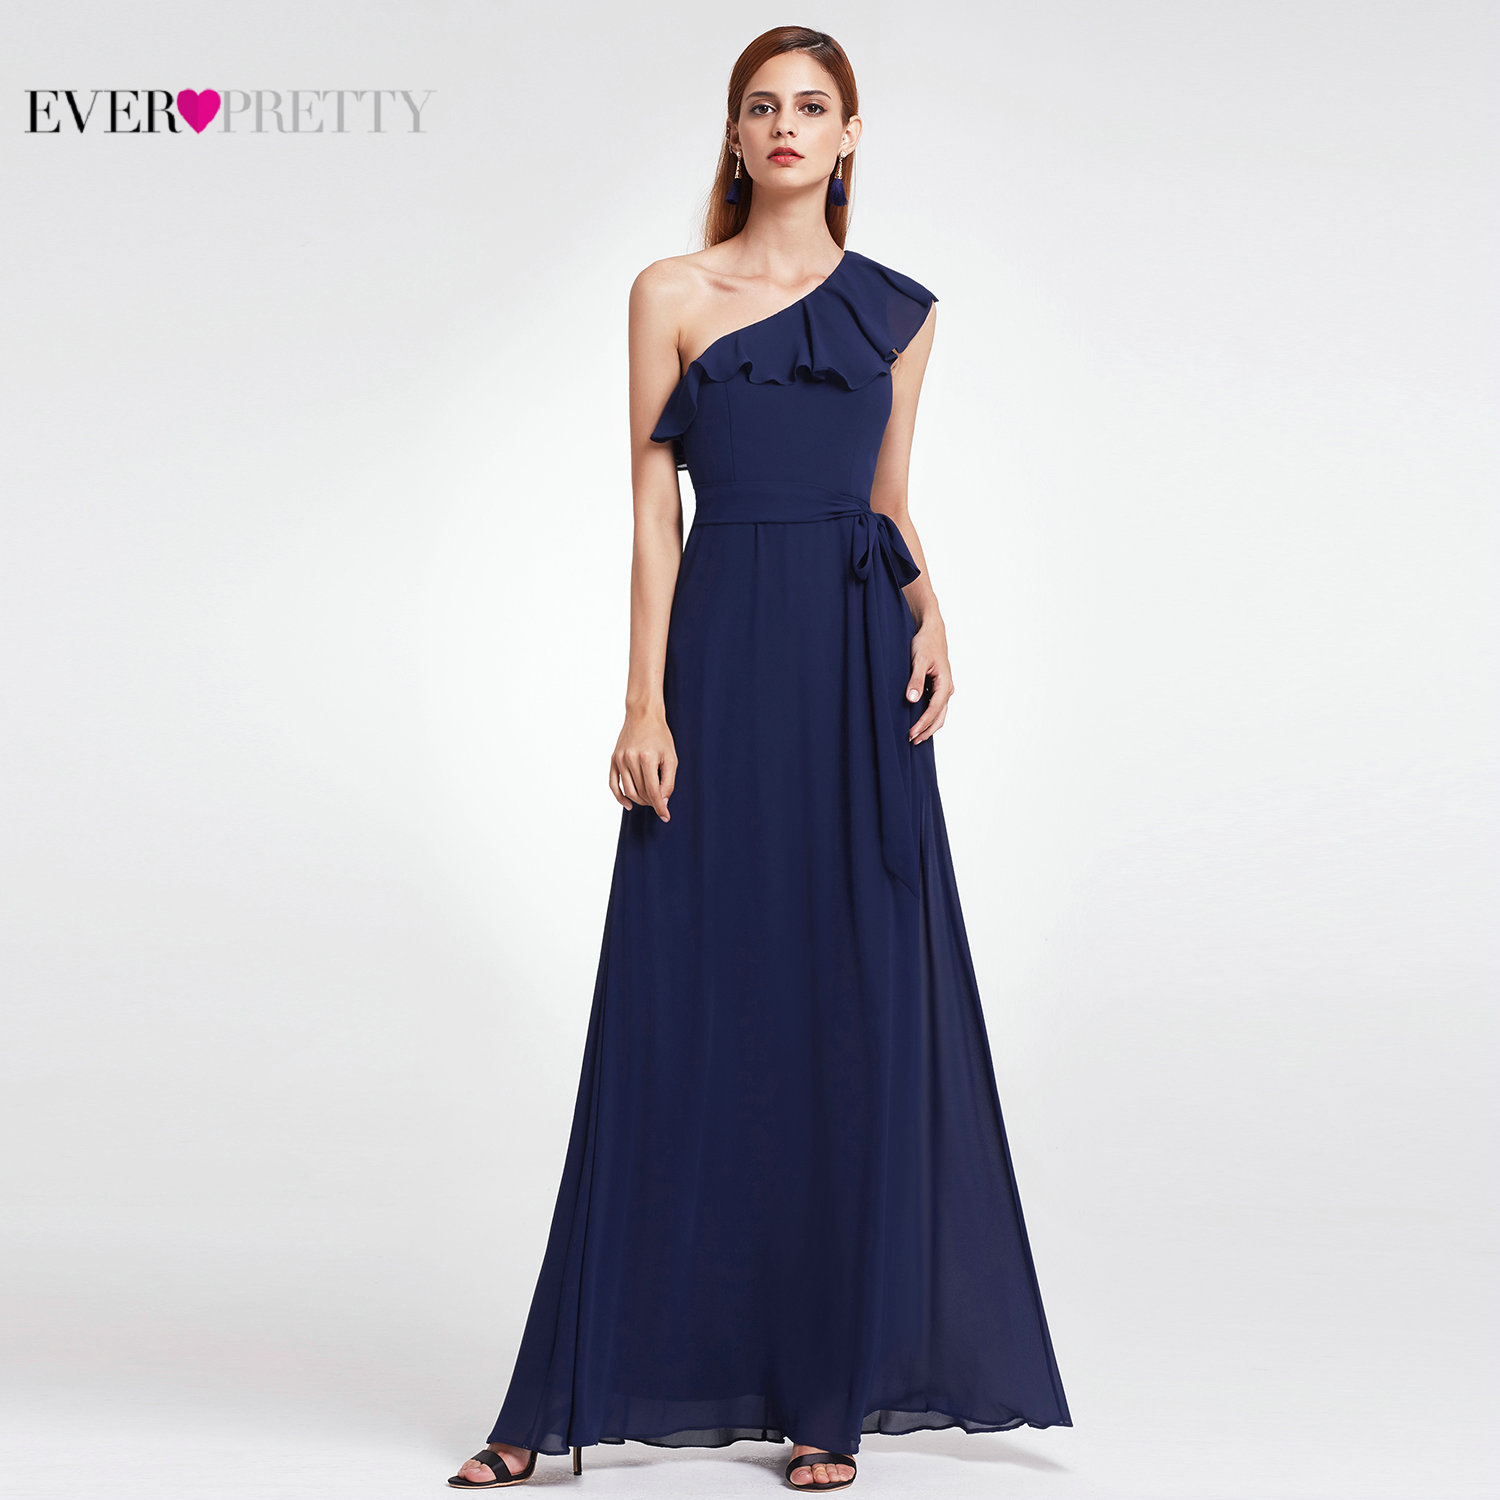 Evening Dresses Long 2020 Ever Pretty Elegant A-line Chiffon Beach Dresses Sexy Navy Blue Formal Party Gowns For Wedding Guest